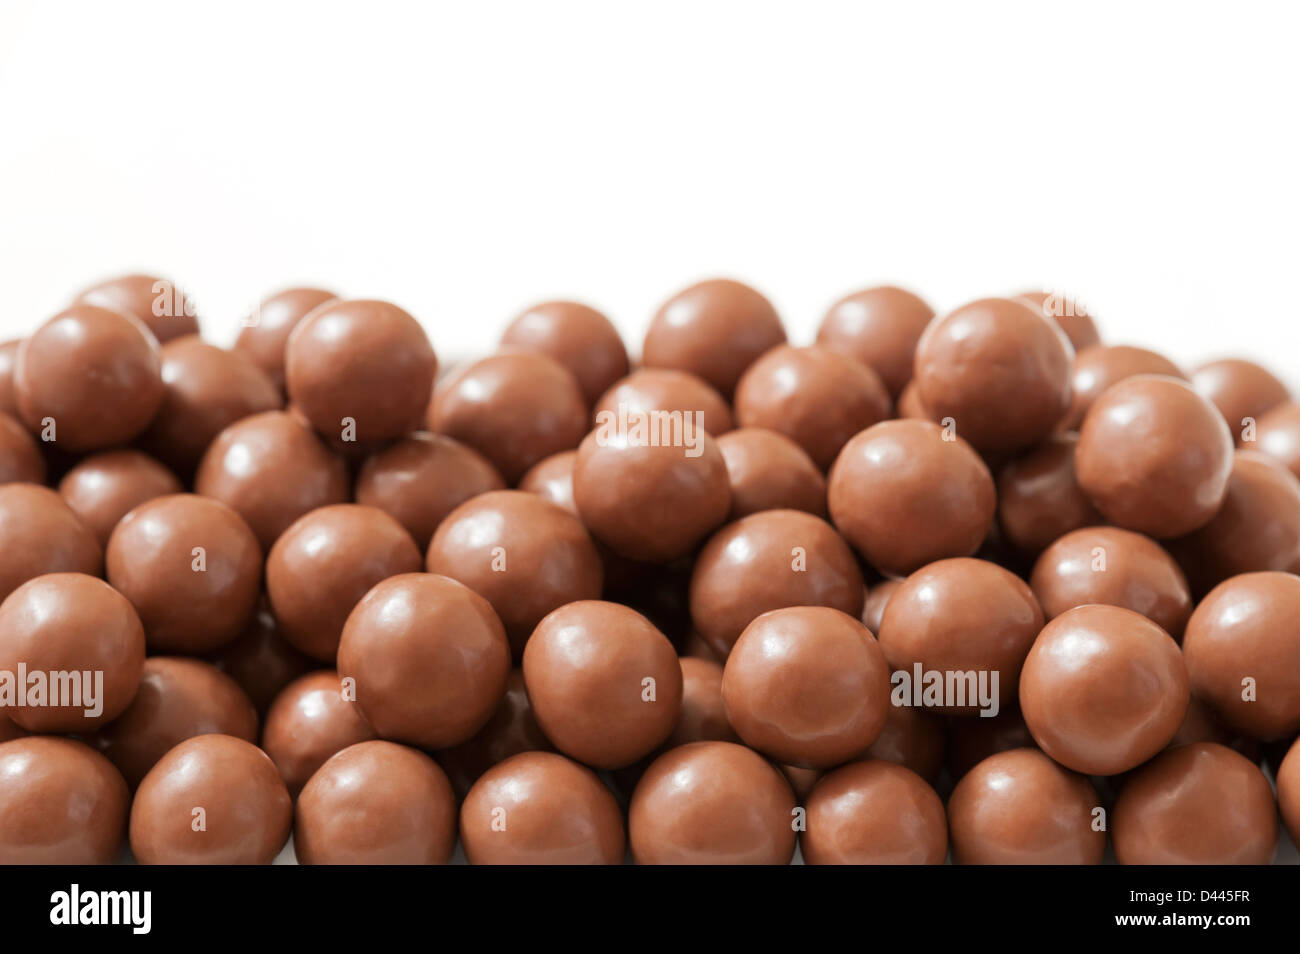 Close up of chocolate balls - Maltesers - against a white background - Stock Image